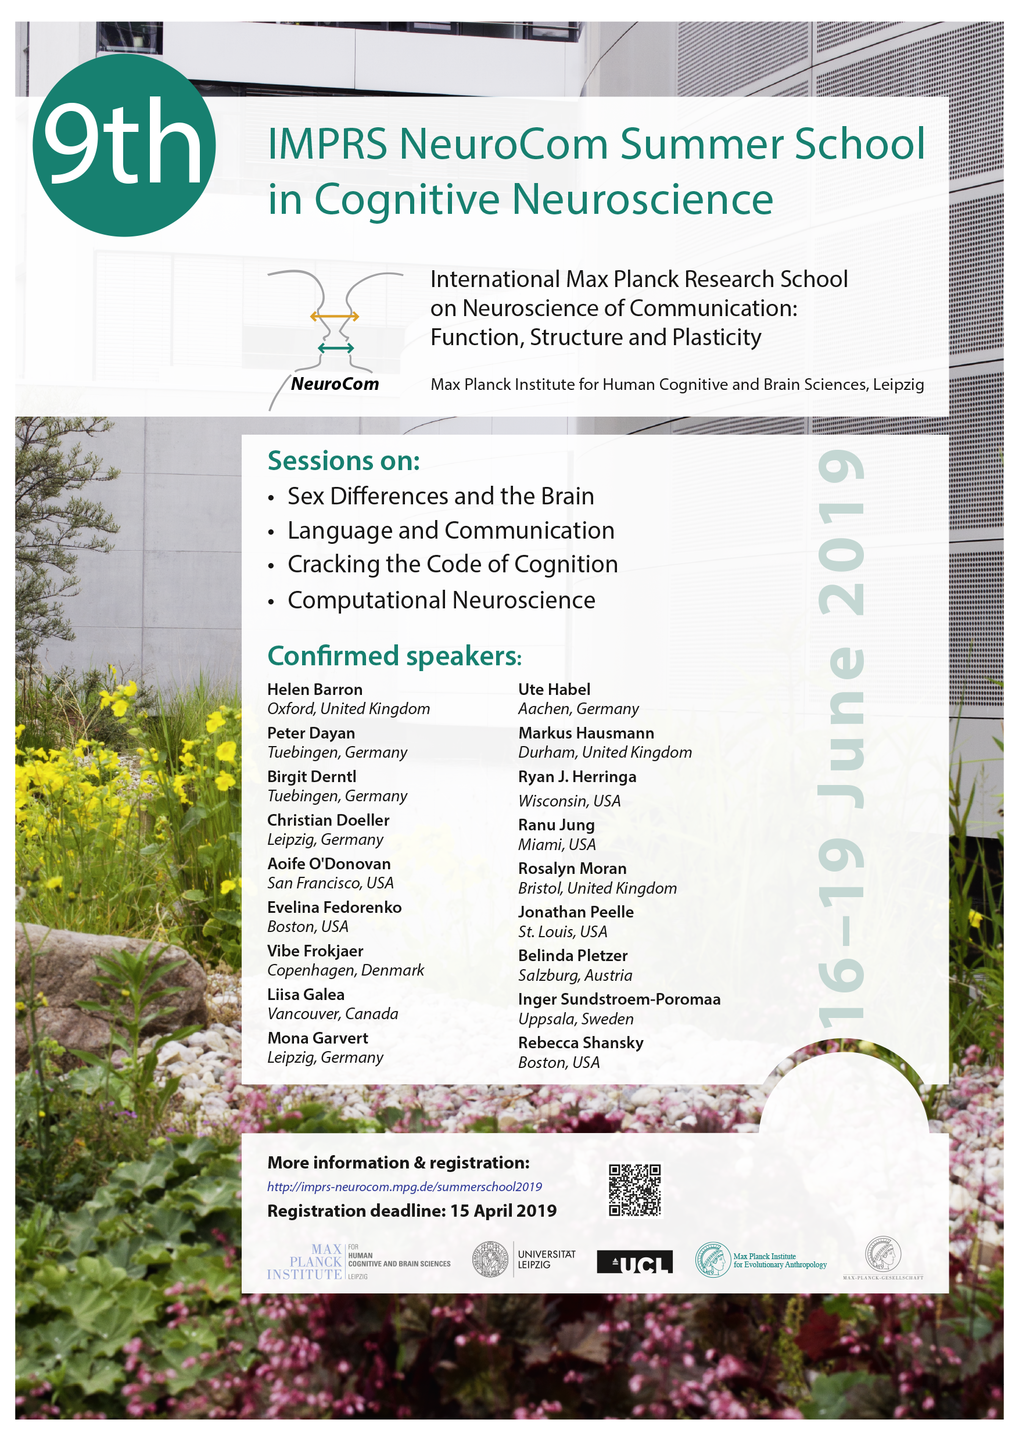 Registration for 9th IMPRS NeuroCom Summer School in Cognitive Neuroscience is now open!